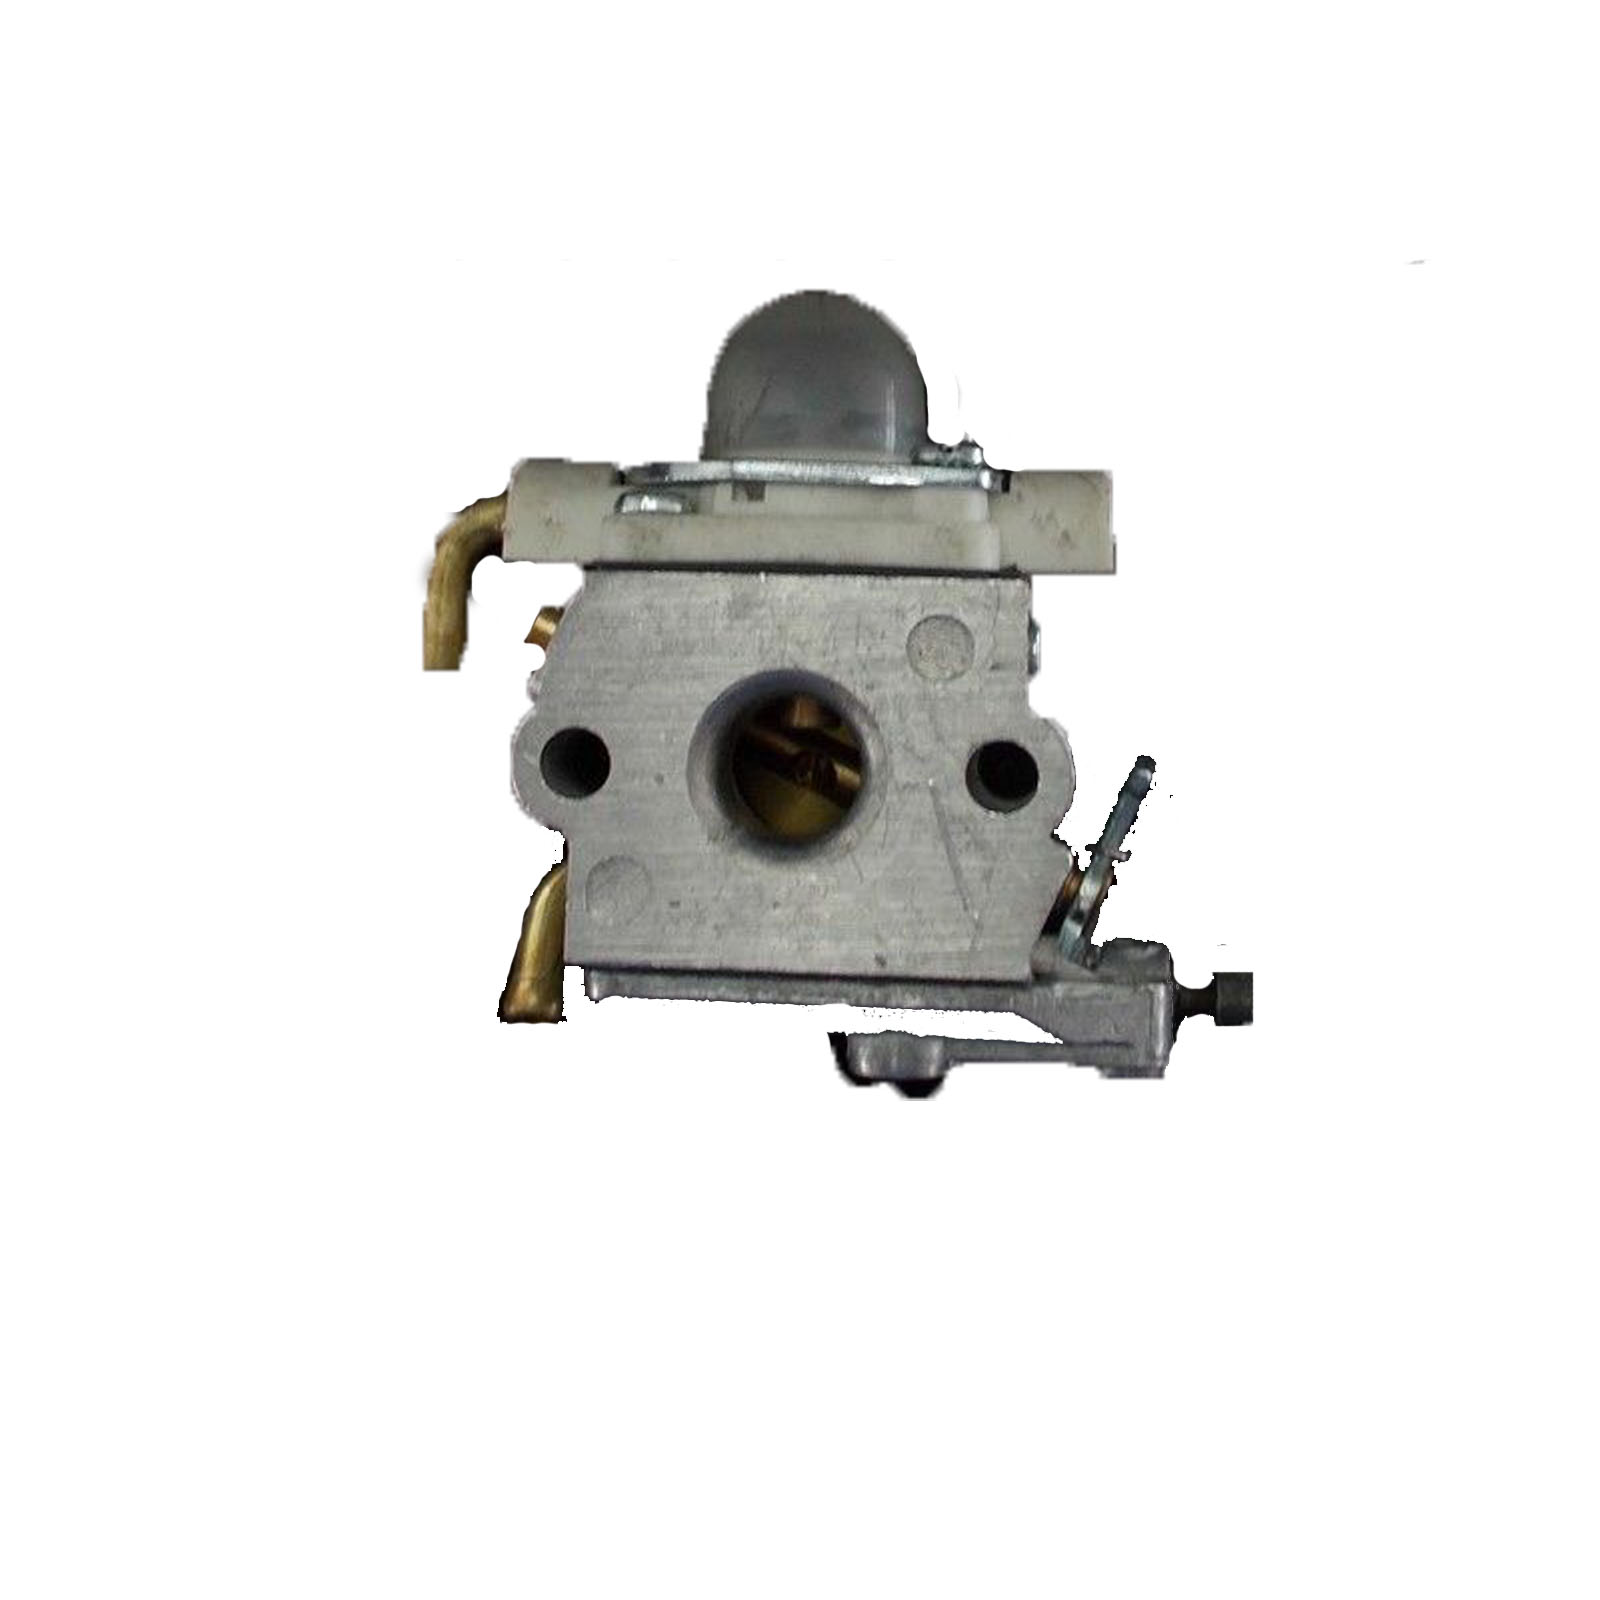 New Carburetor for STIHL HS 75, HS 80, HS 85 replaces 4226 120 0